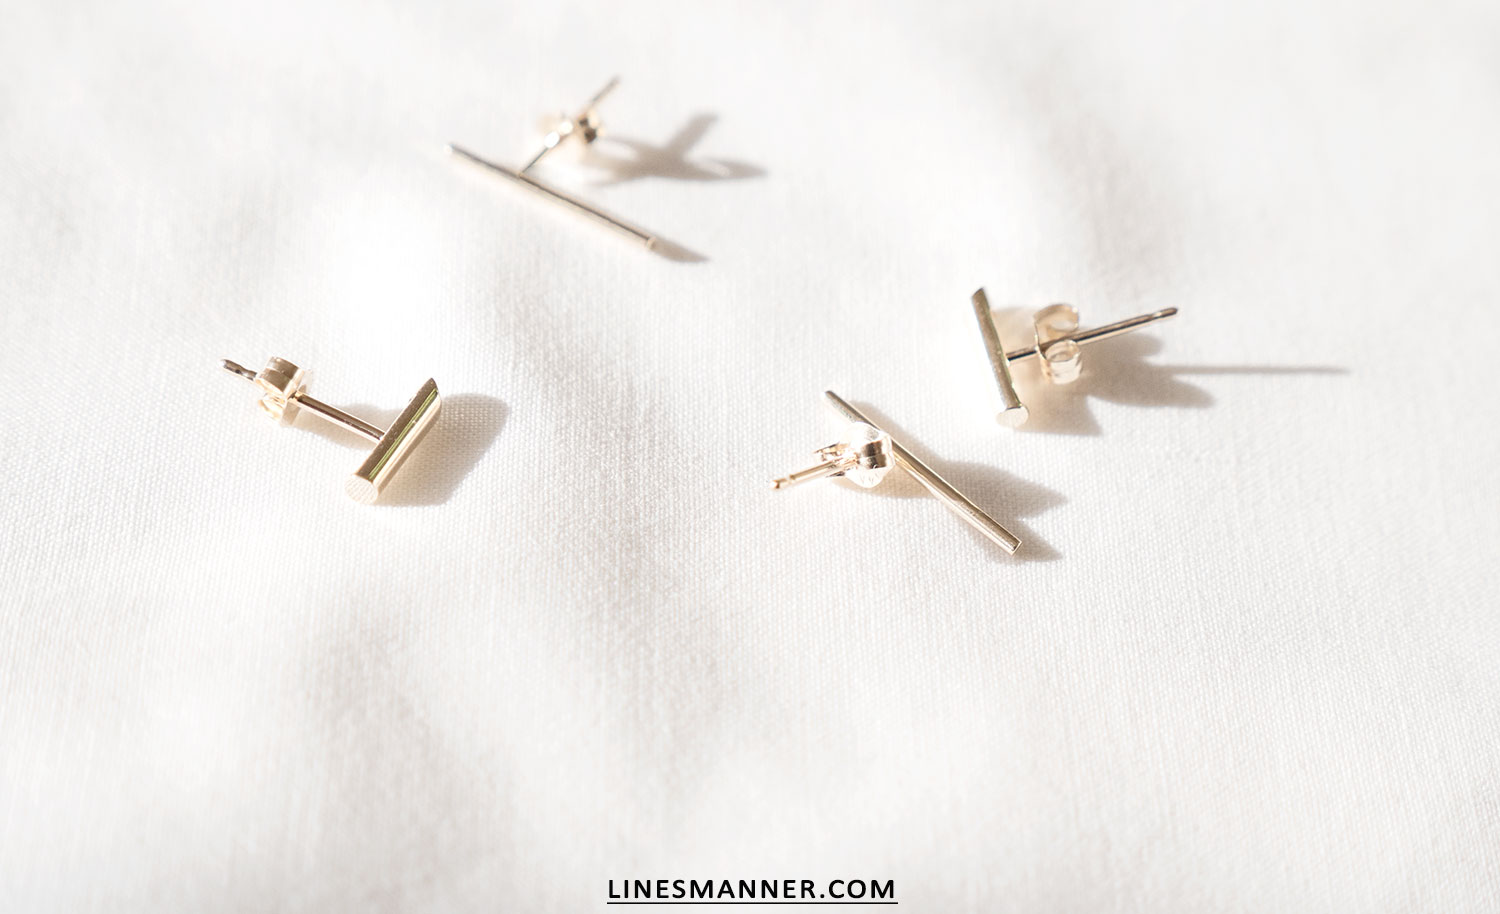 Lines-Manner-Bloglovin-Mejuri-Collaboration-Contest-Minimalism-Edge-NYC-Scandinavian-Pure_and_Simple-Essentials-Details-Gold-Vermeil-Jewelry-Rings-Earrings-White-Whiteout-Subtil-Linear-Geometric-7